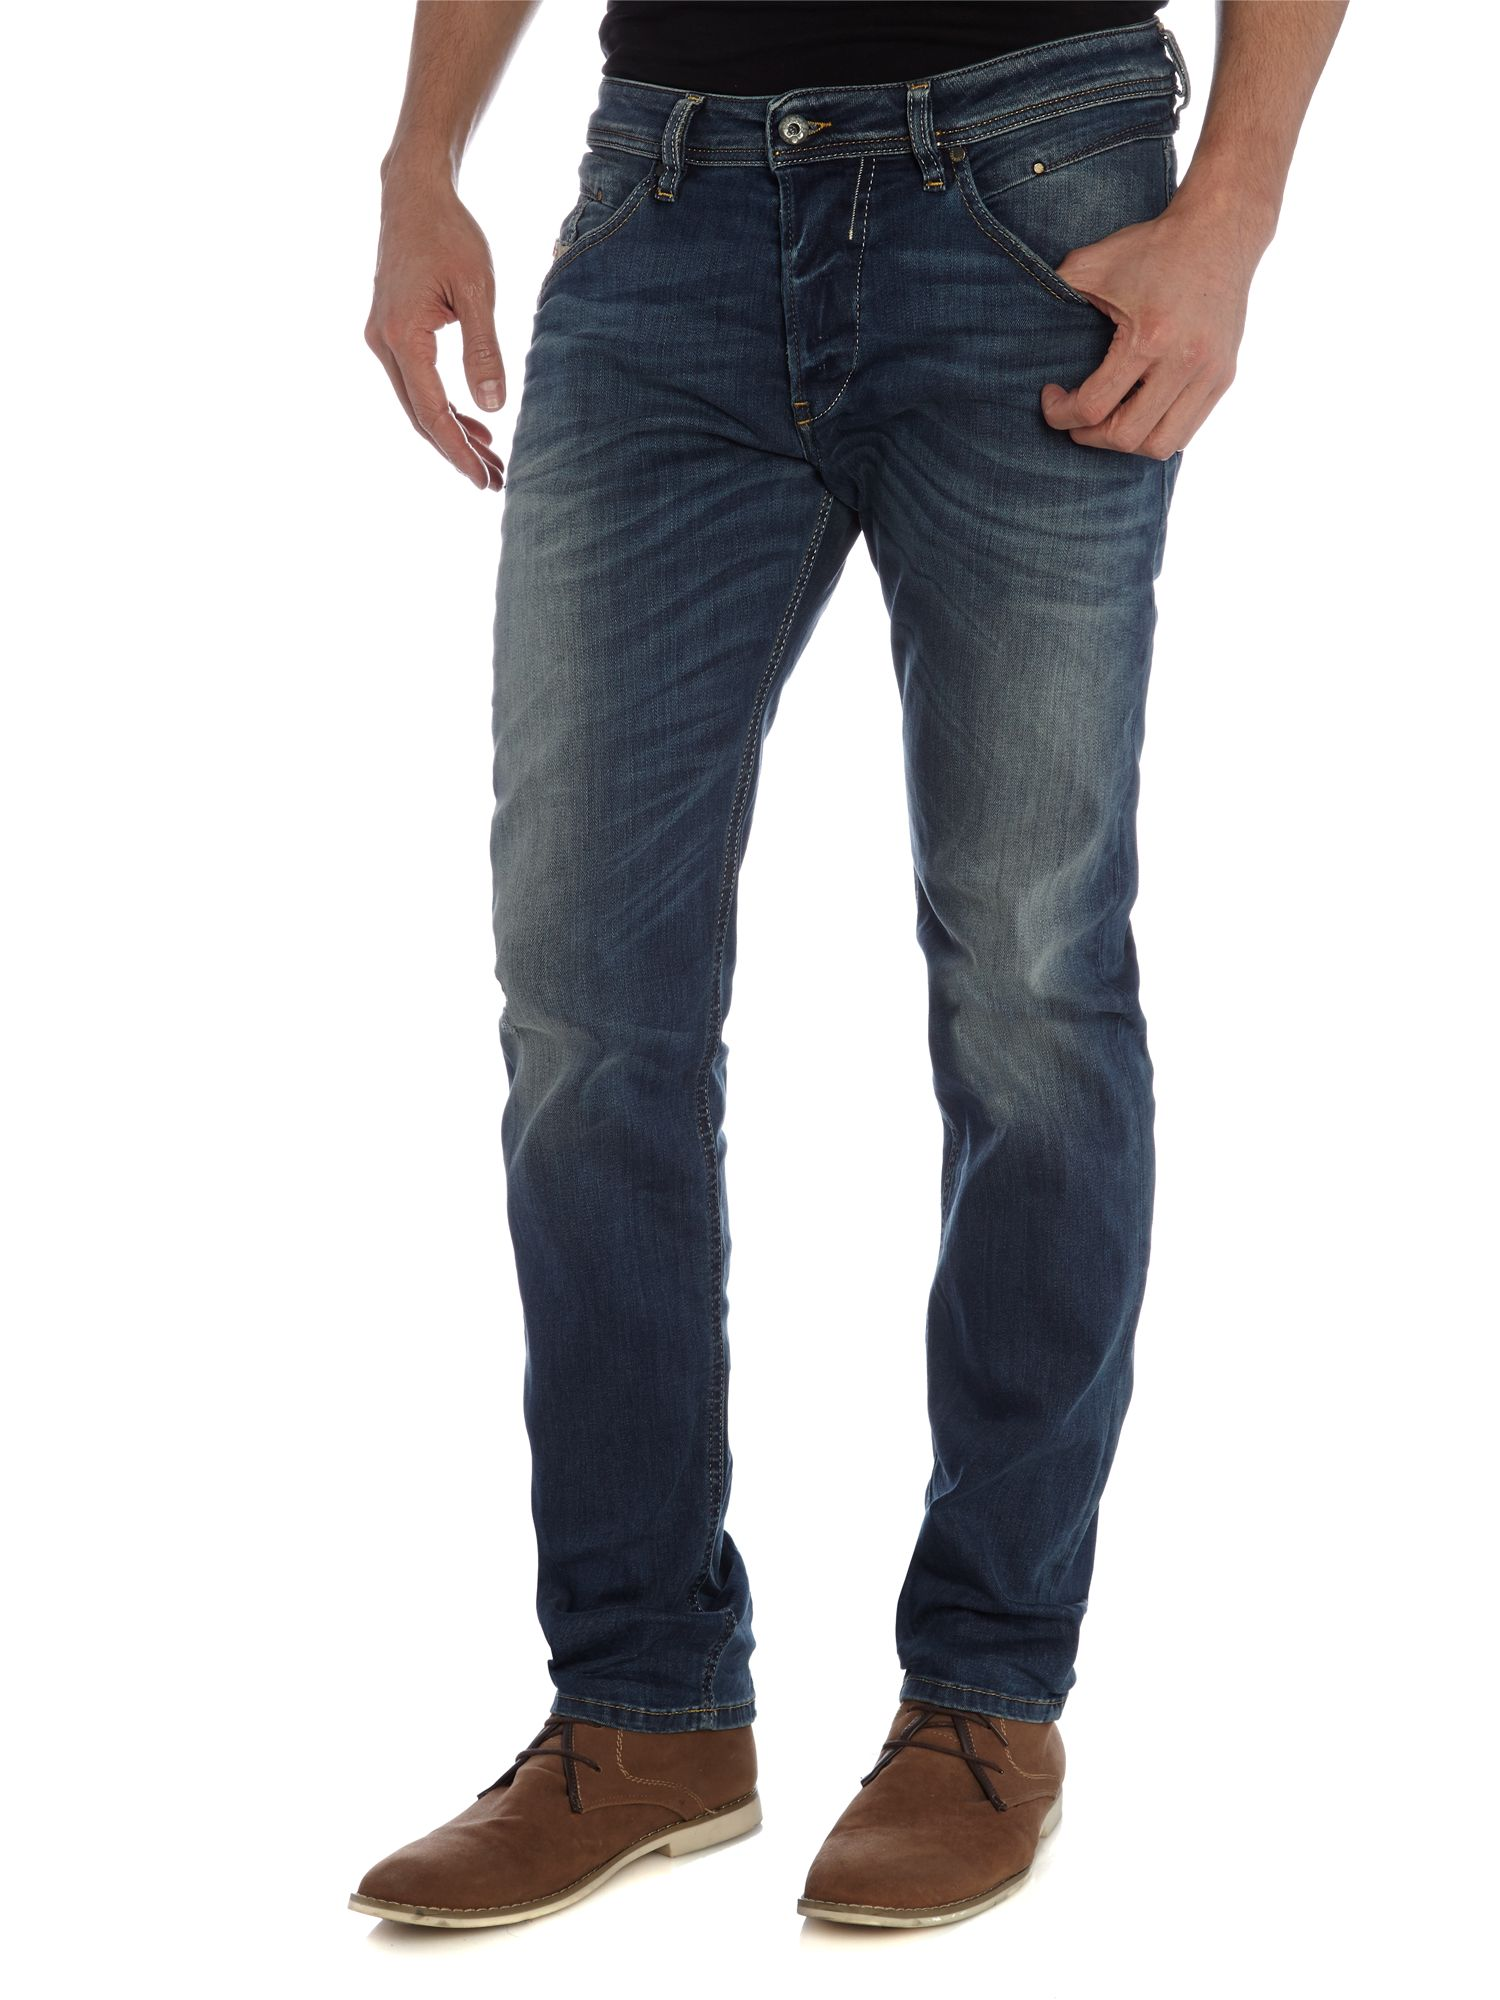 Belther 0827Q tapered fit jean